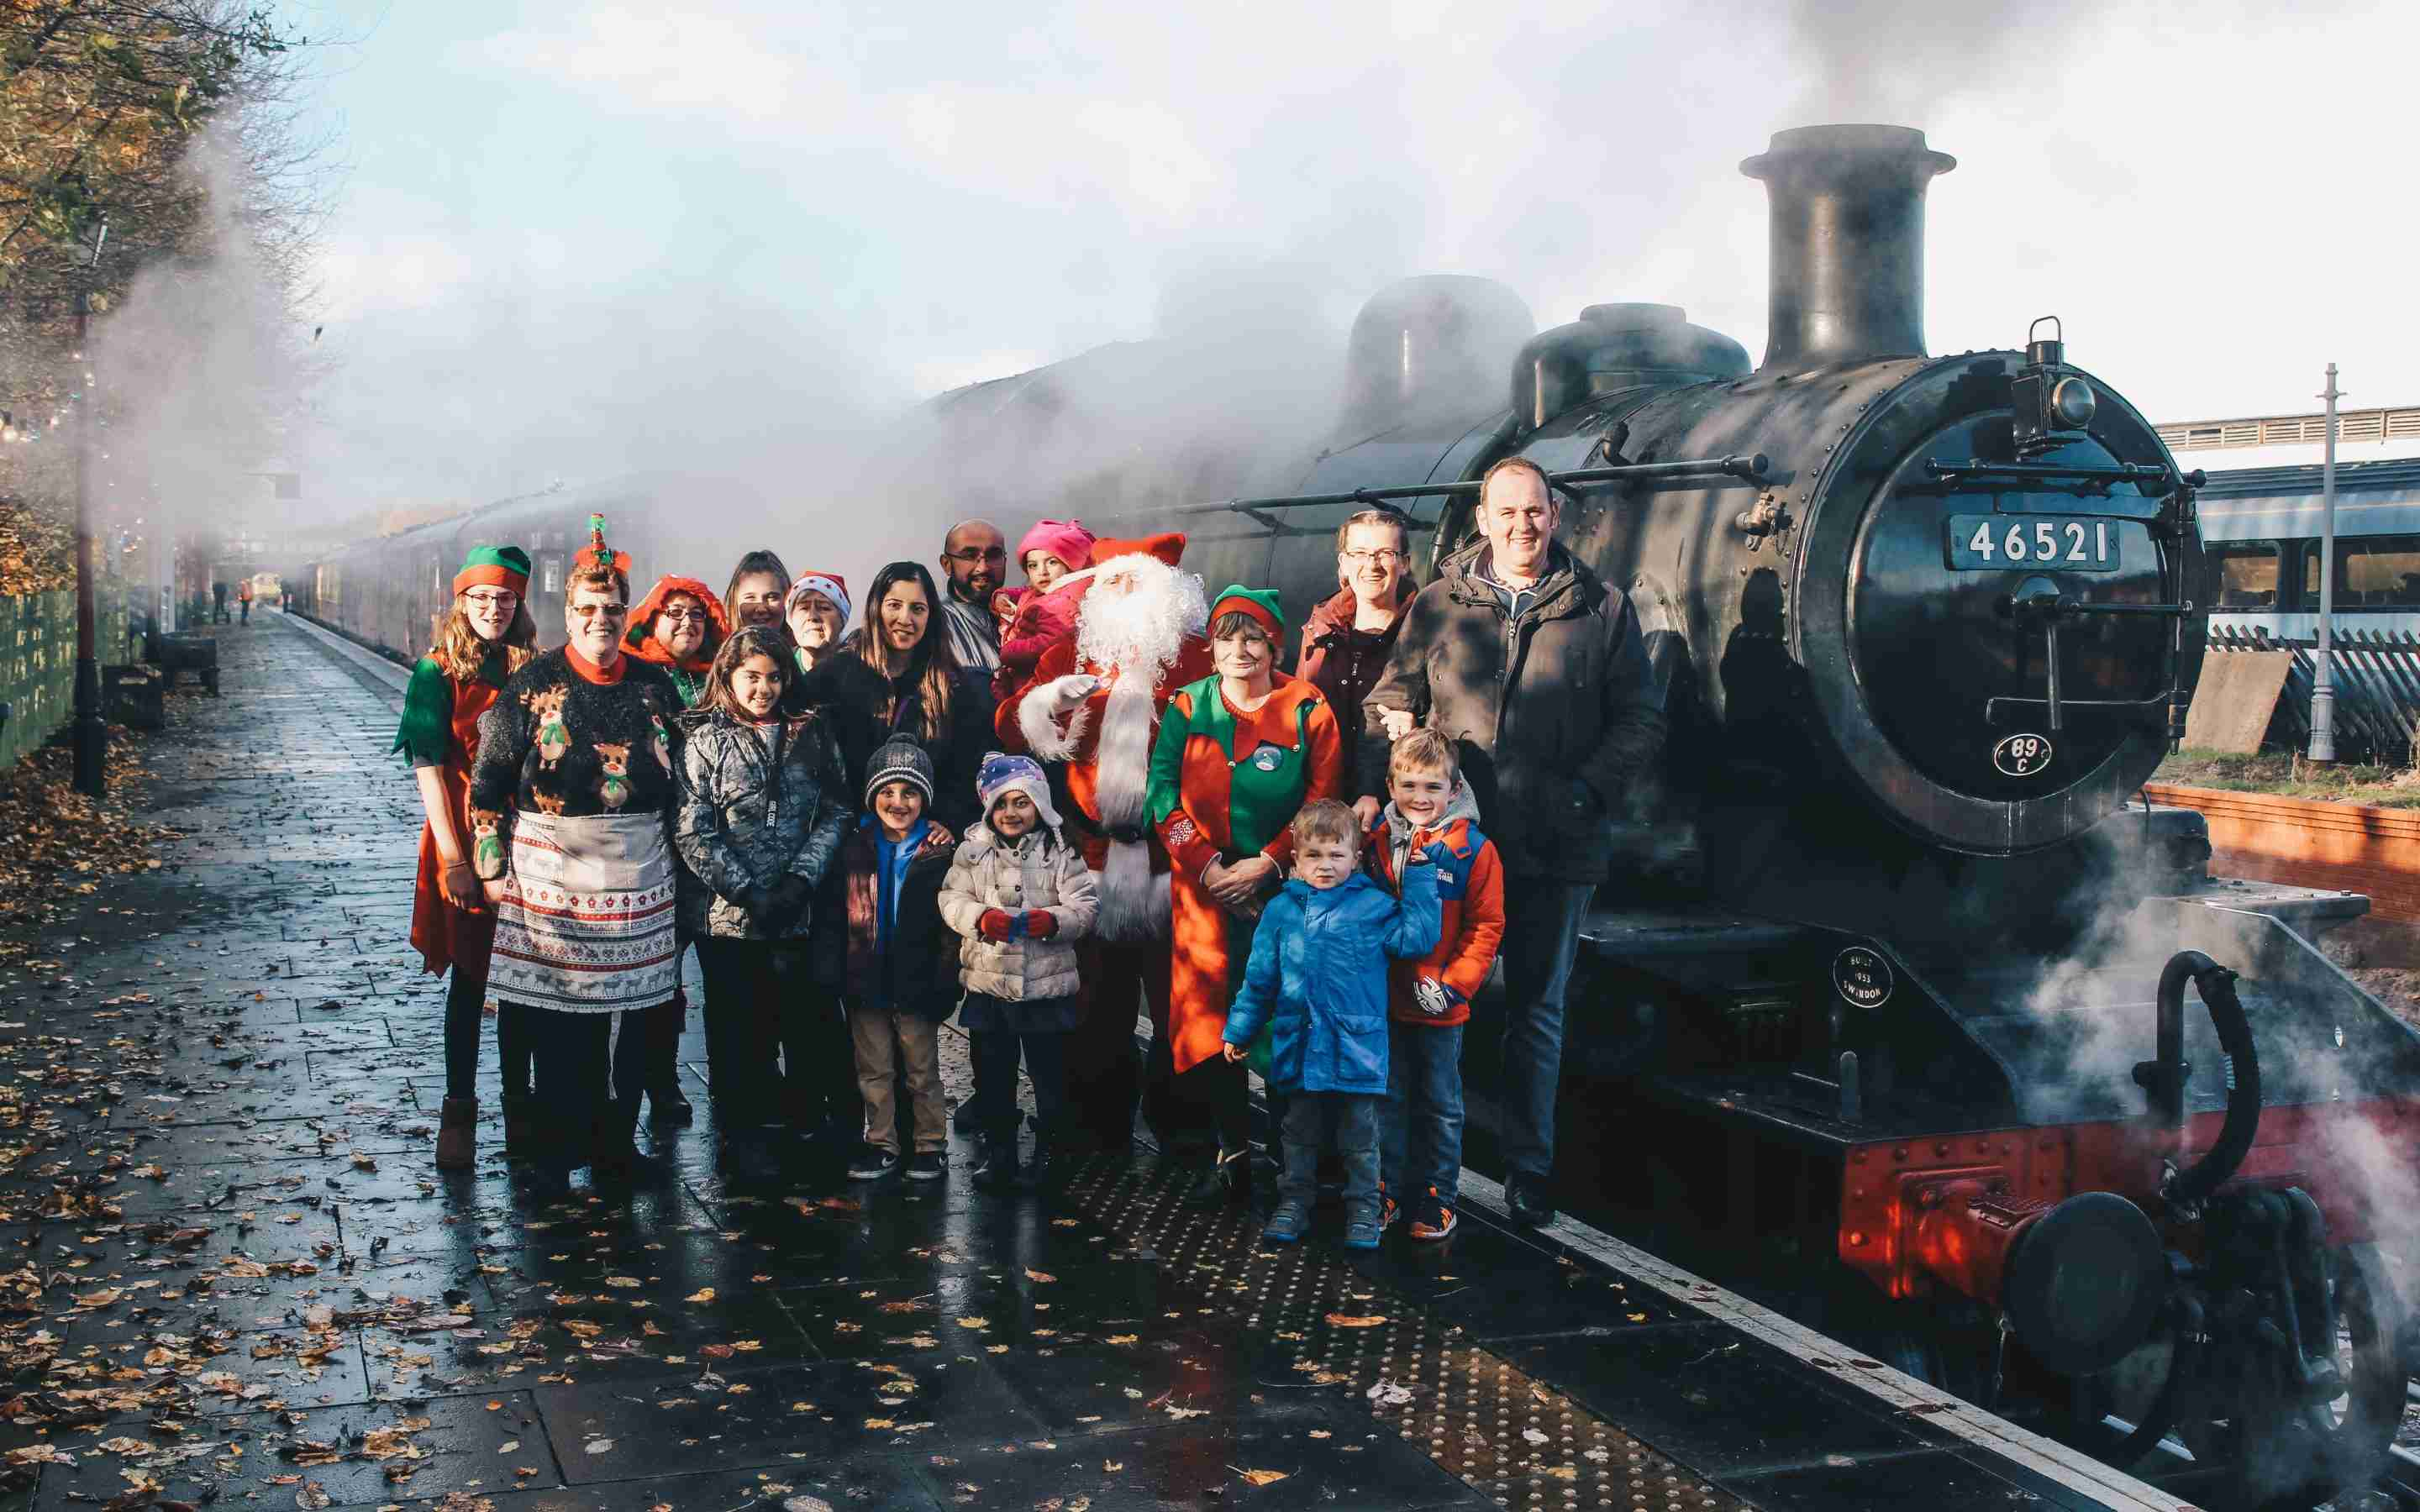 Santa Special Steam Train Trip for PASIC Families at Great Central Railway, Loughborough